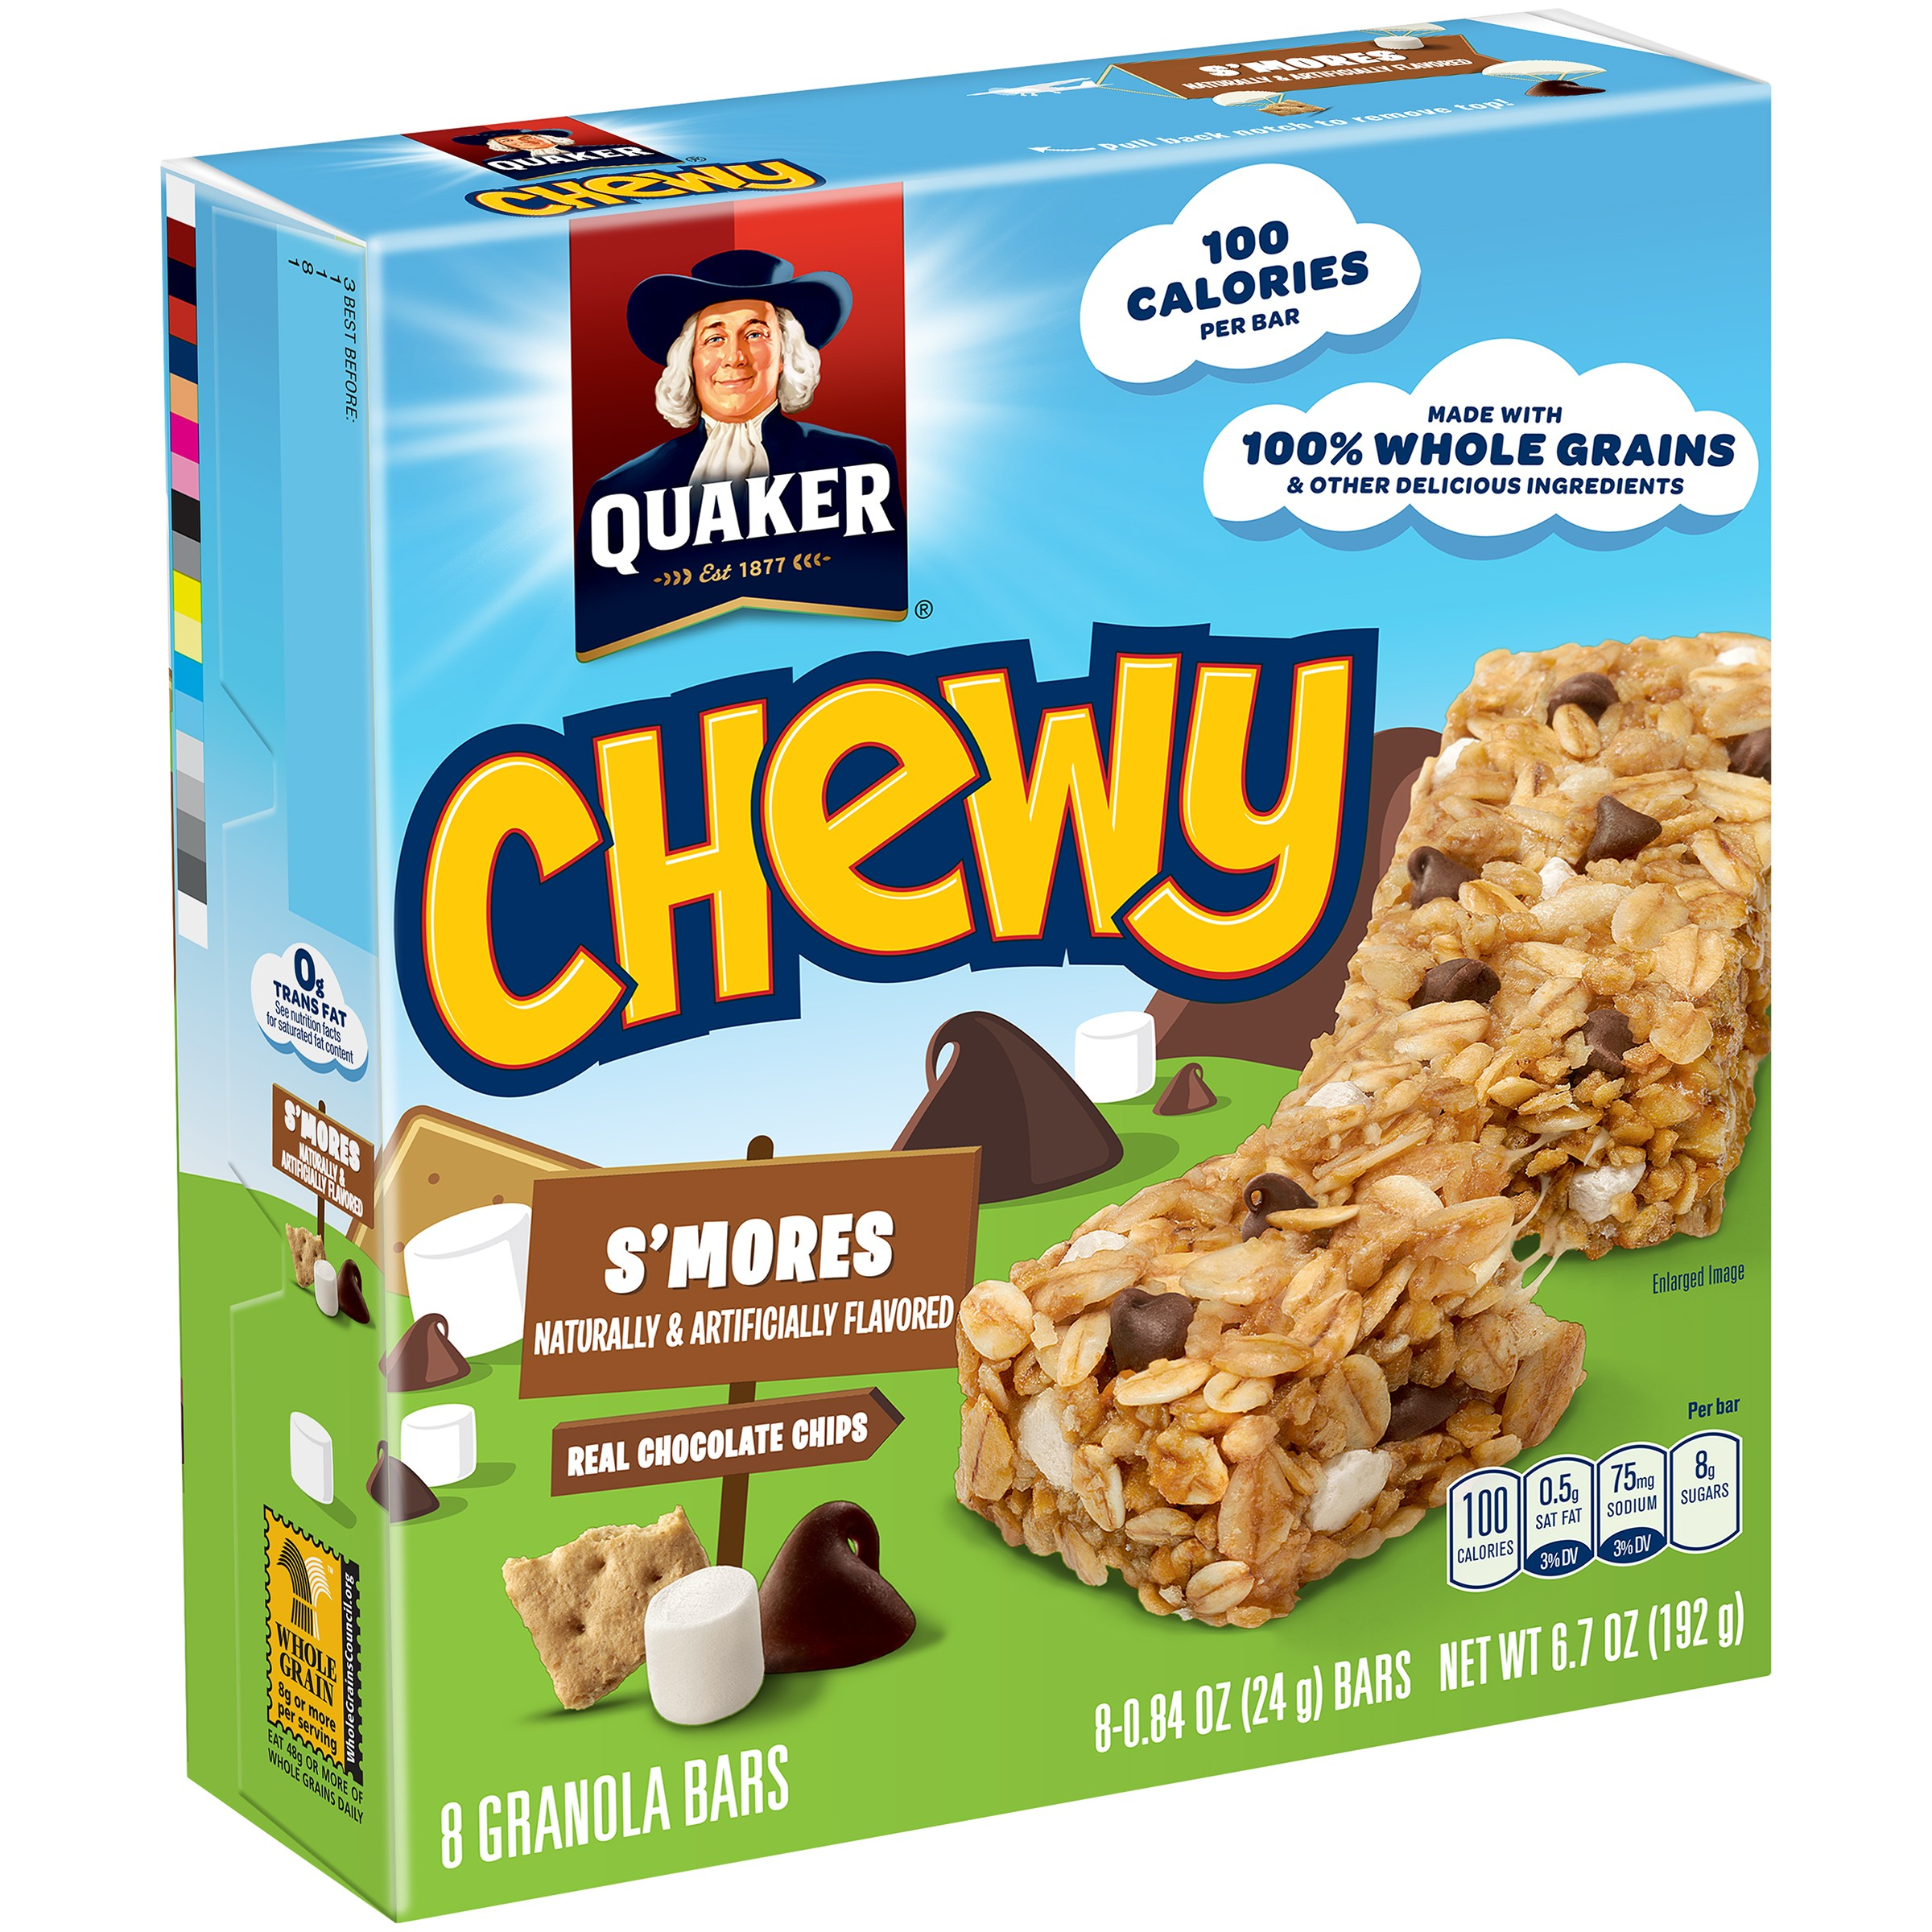 Quaker Chewy Granola Bars, S'mores, 0.84 oz Bars, 8 count